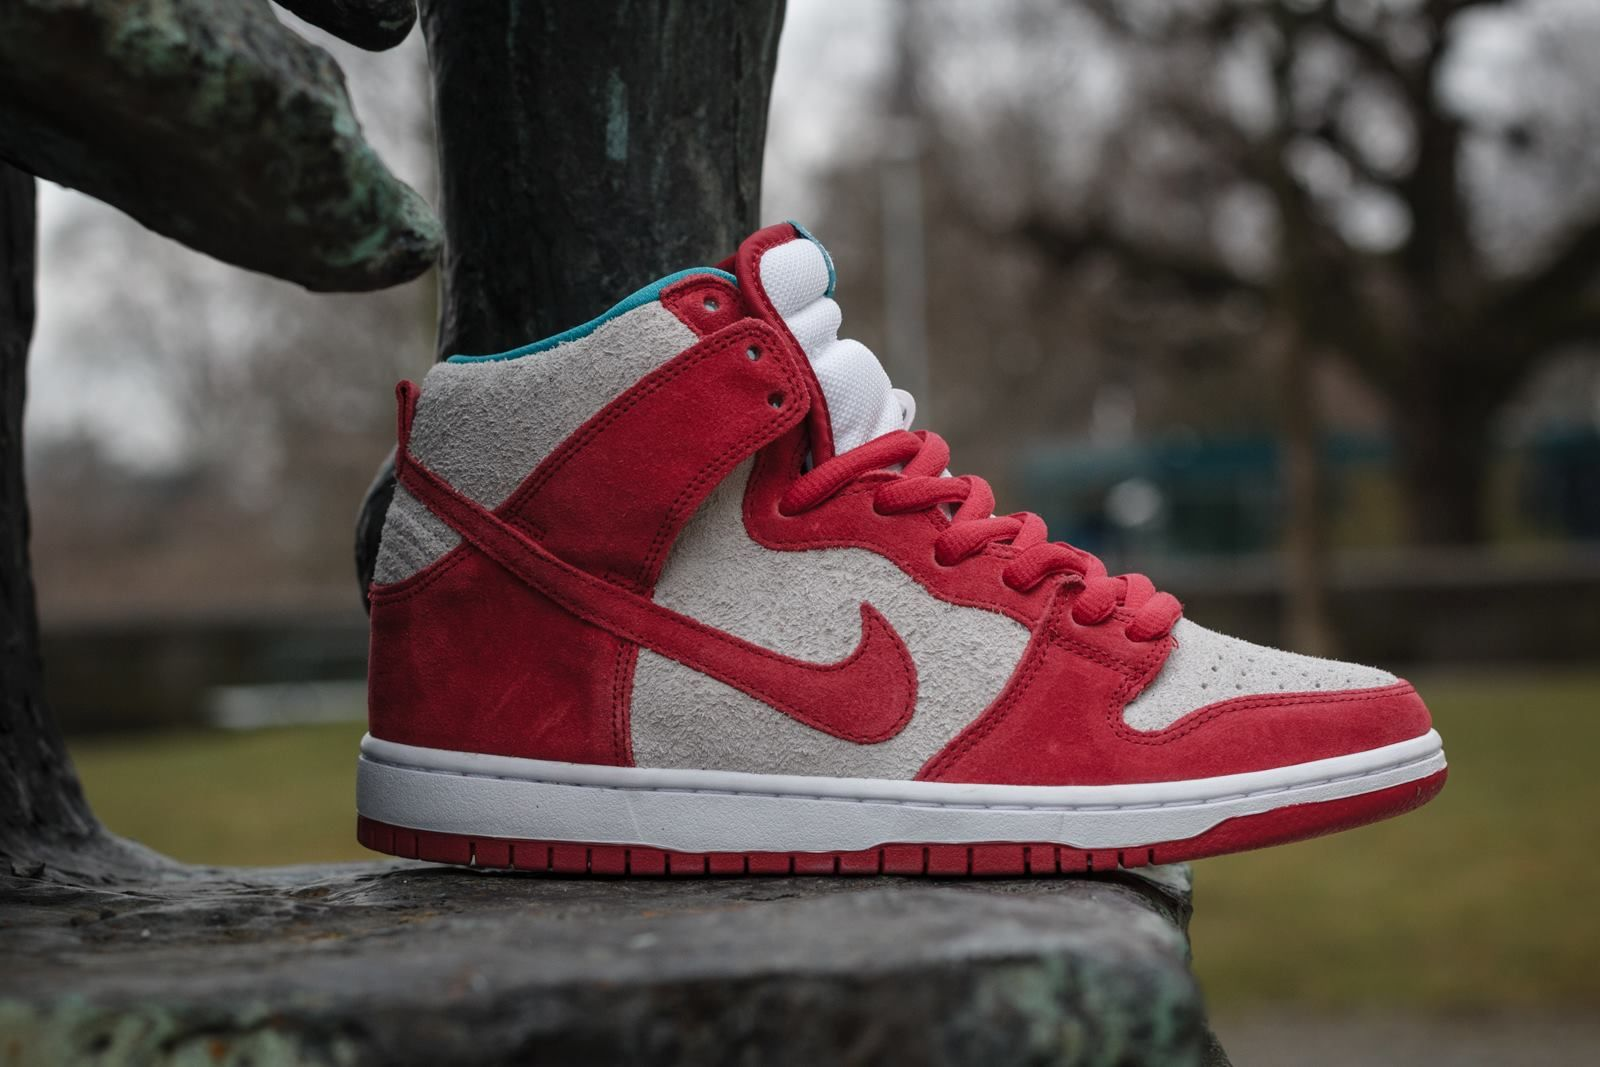 finest selection 53cb8 2f73a Nike Dunk High Pro SB